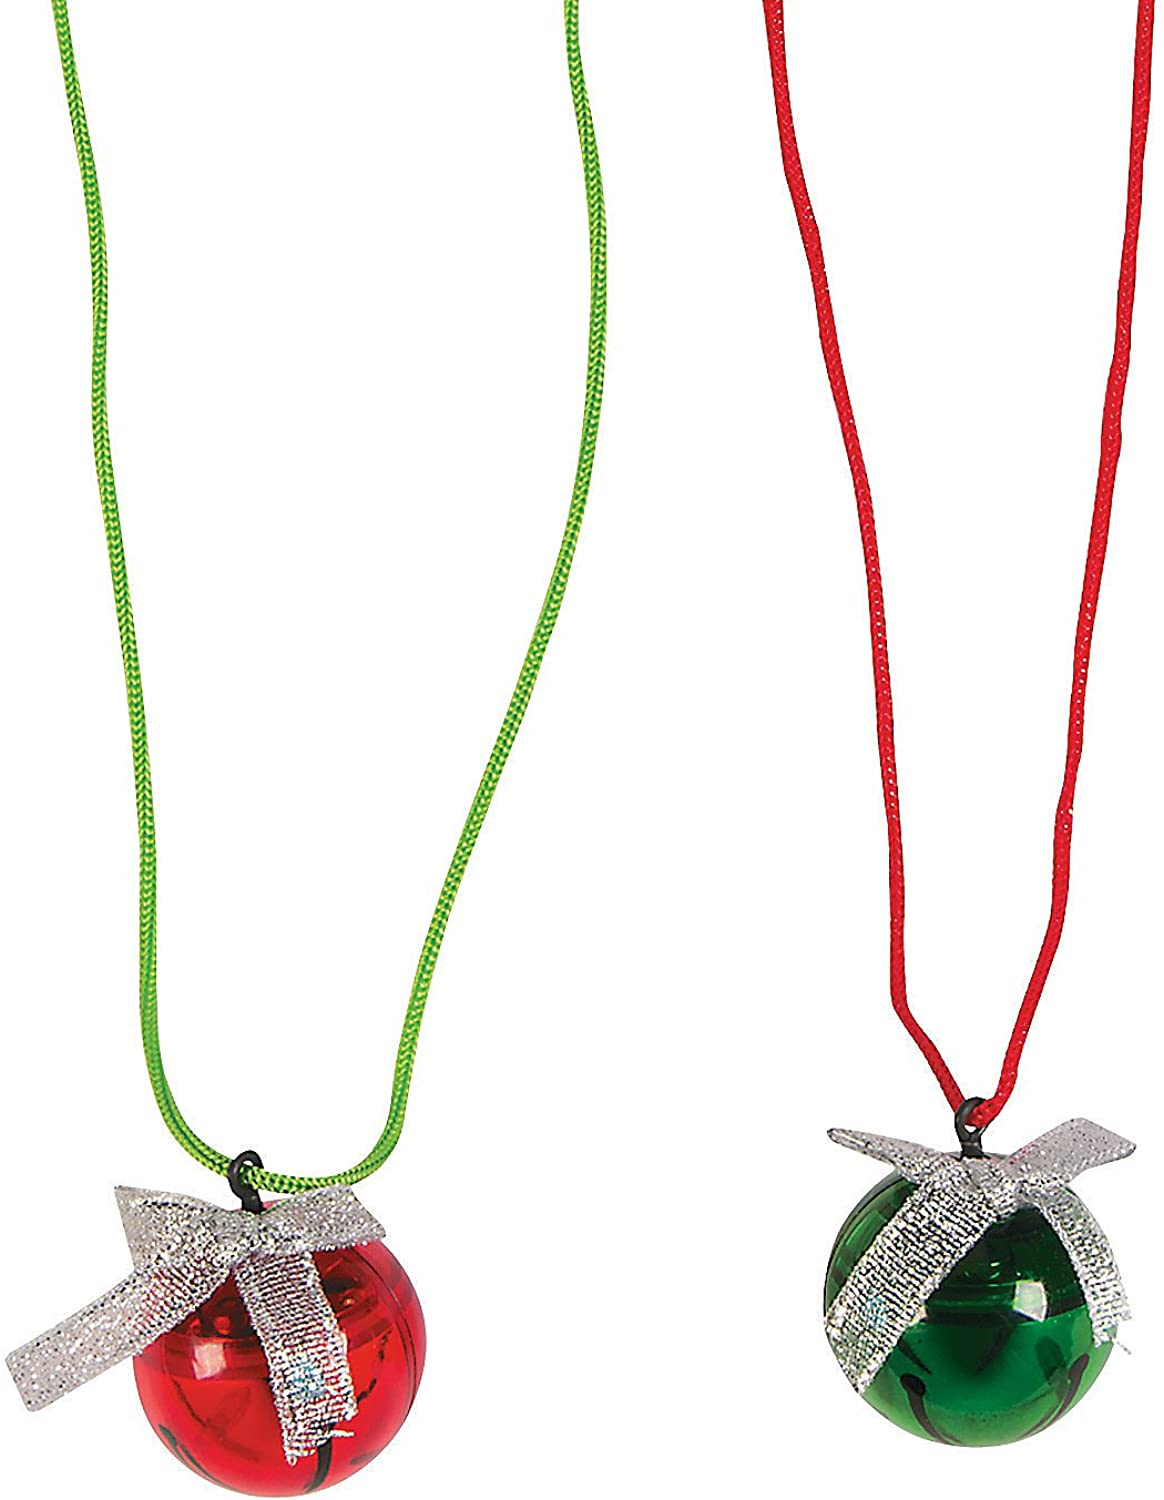 Jingle Bell Red Necklace